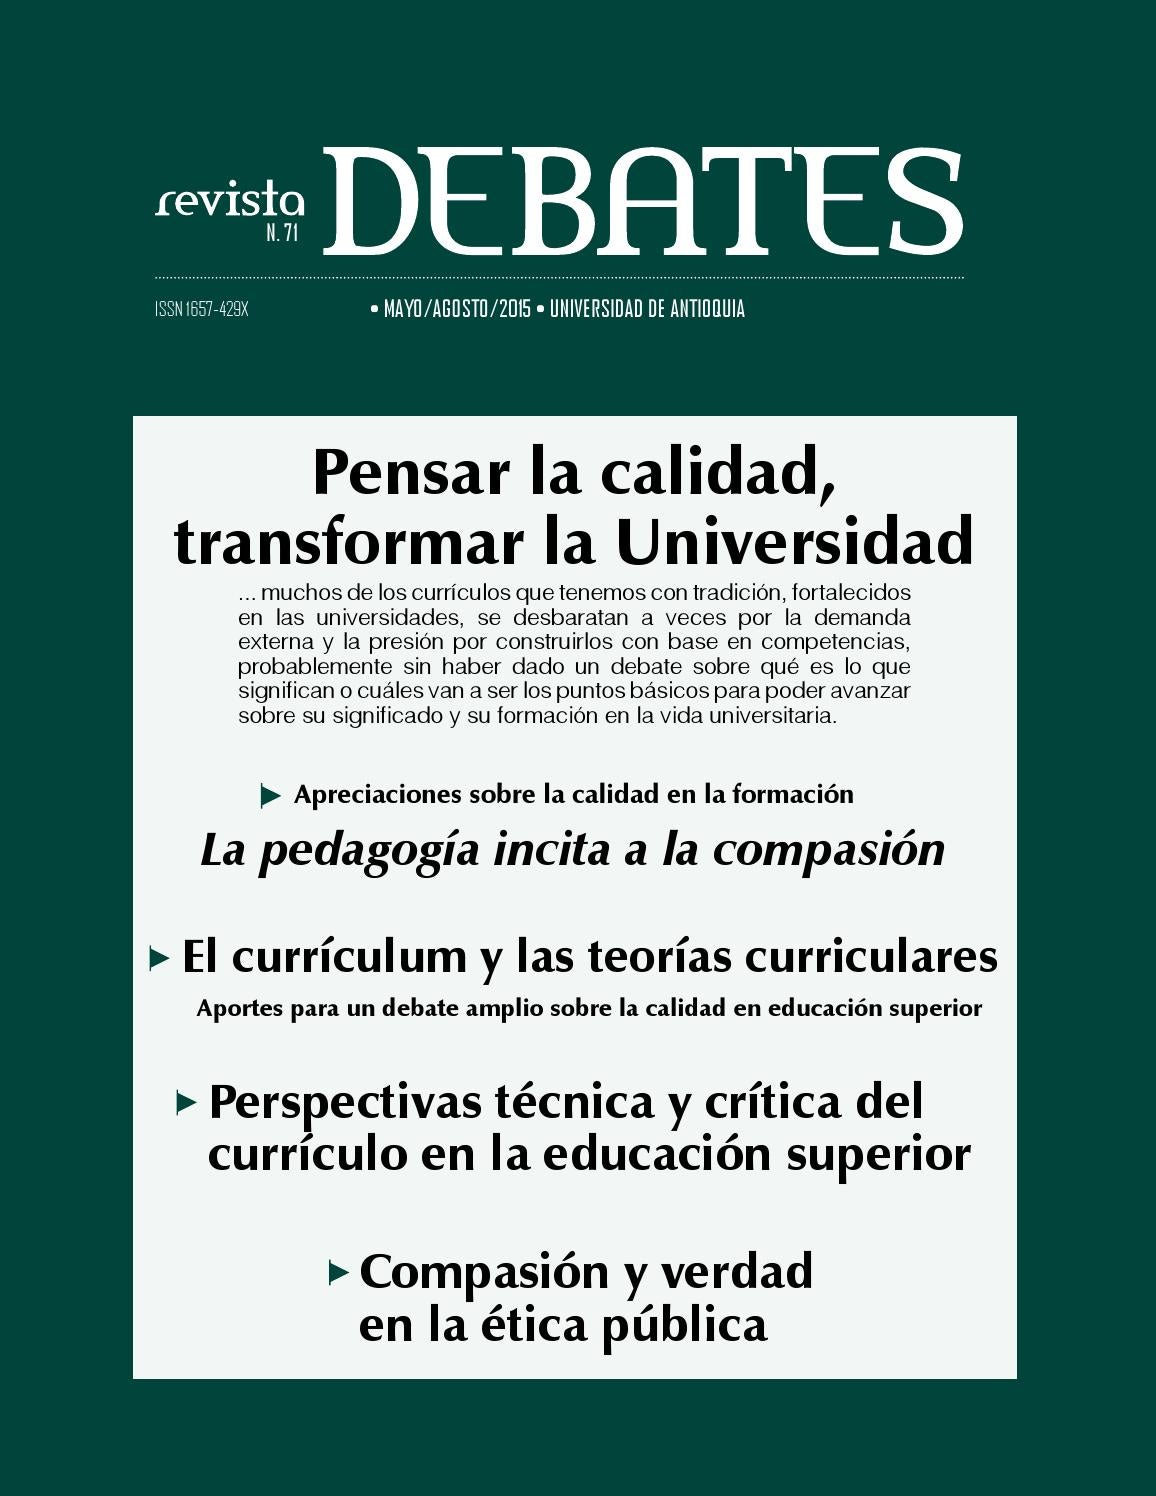 Debates 71 by Universidad de Antioquia - issuu